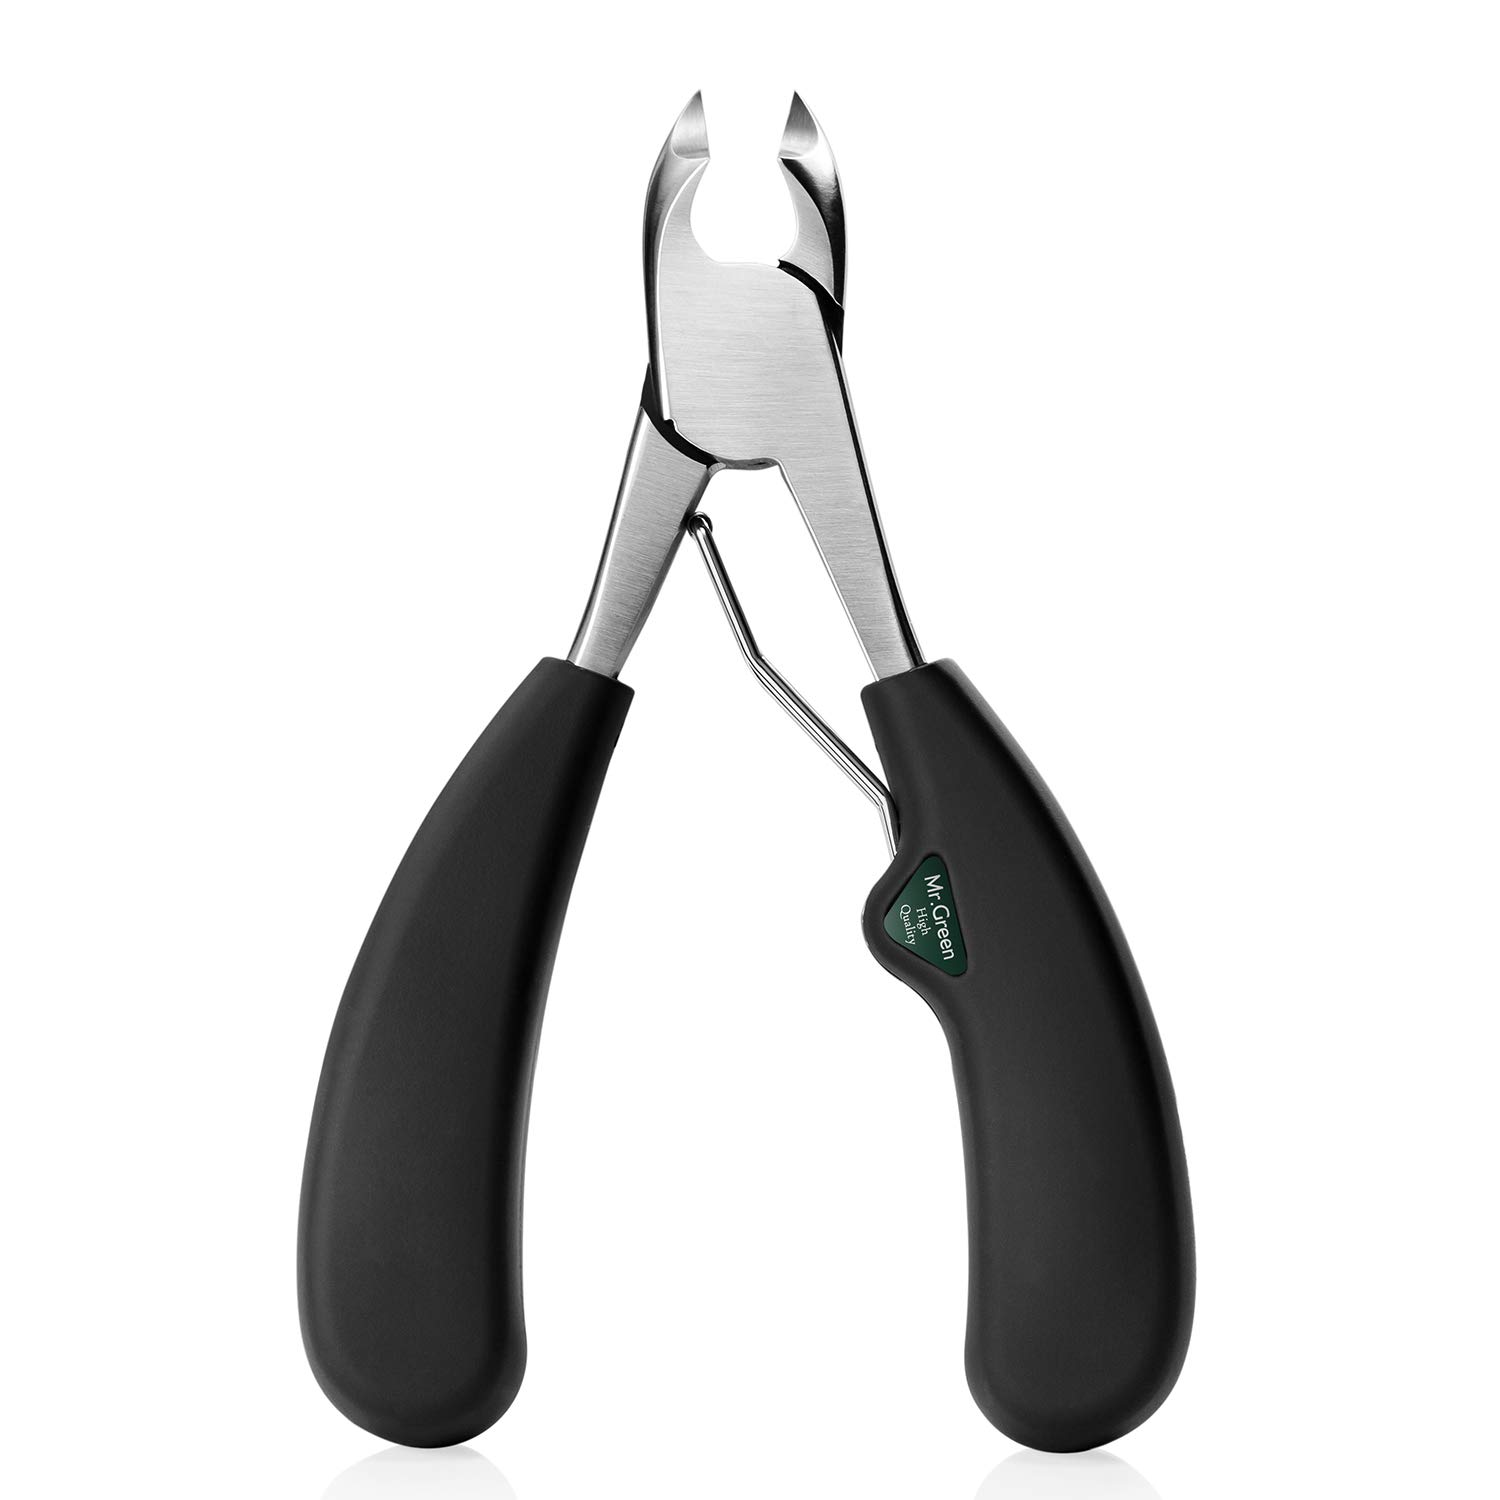 Mr.Green Precision Toenail Clippers for Thick or Ingrown Toenails, Heavy Duty Stainless Steel Cuticle Trimmer, Fingernail Clipper for Seniors by MrGreen